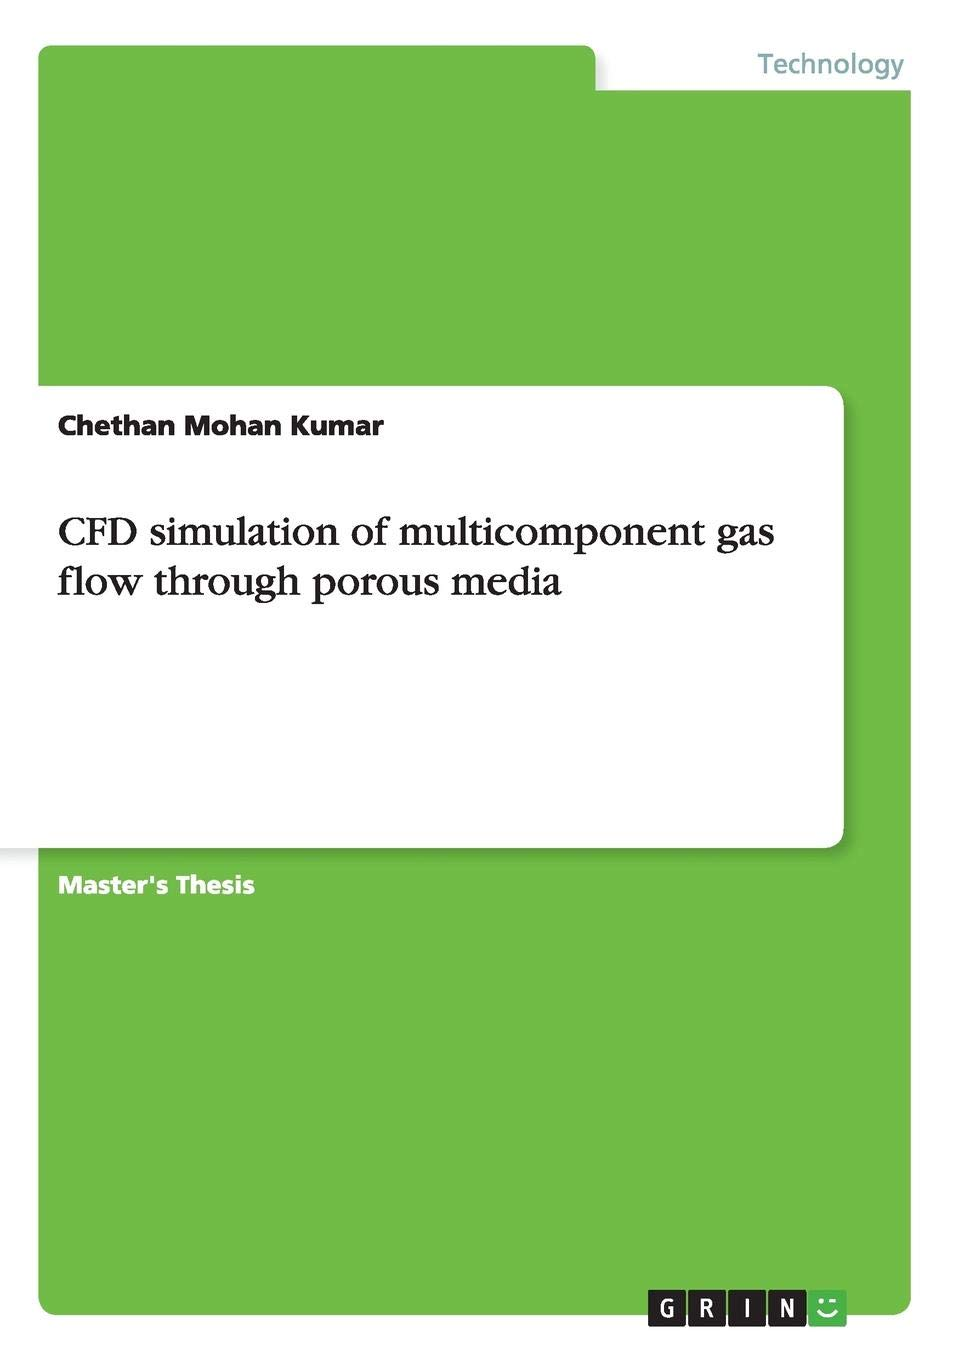 Cfd Simulation of Multicomponent Gas Flow Through Porous